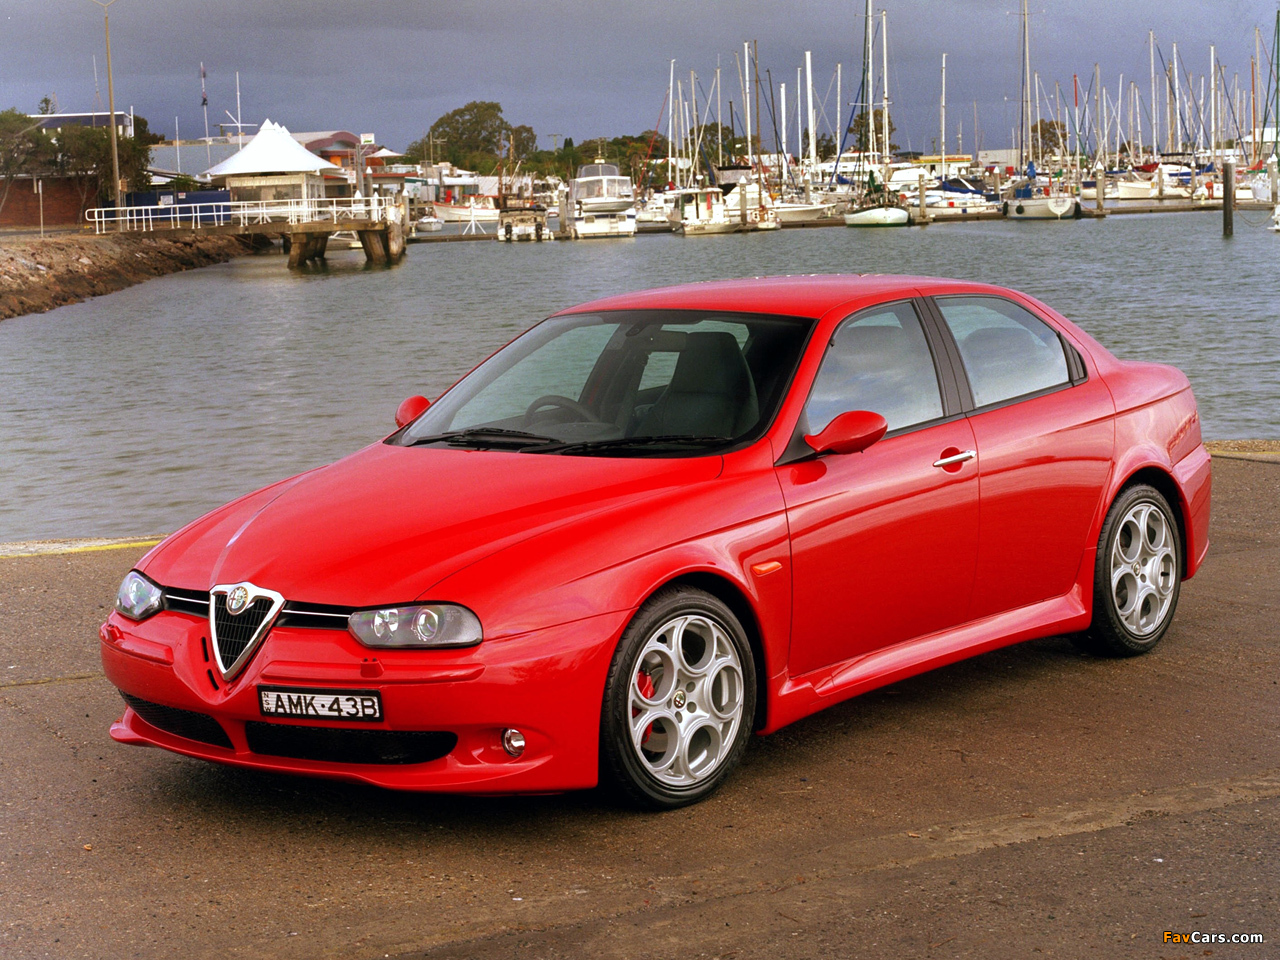 alfa romeo 156 gta au spec 932a 2002 2003 wallpapers 1280x960. Black Bedroom Furniture Sets. Home Design Ideas